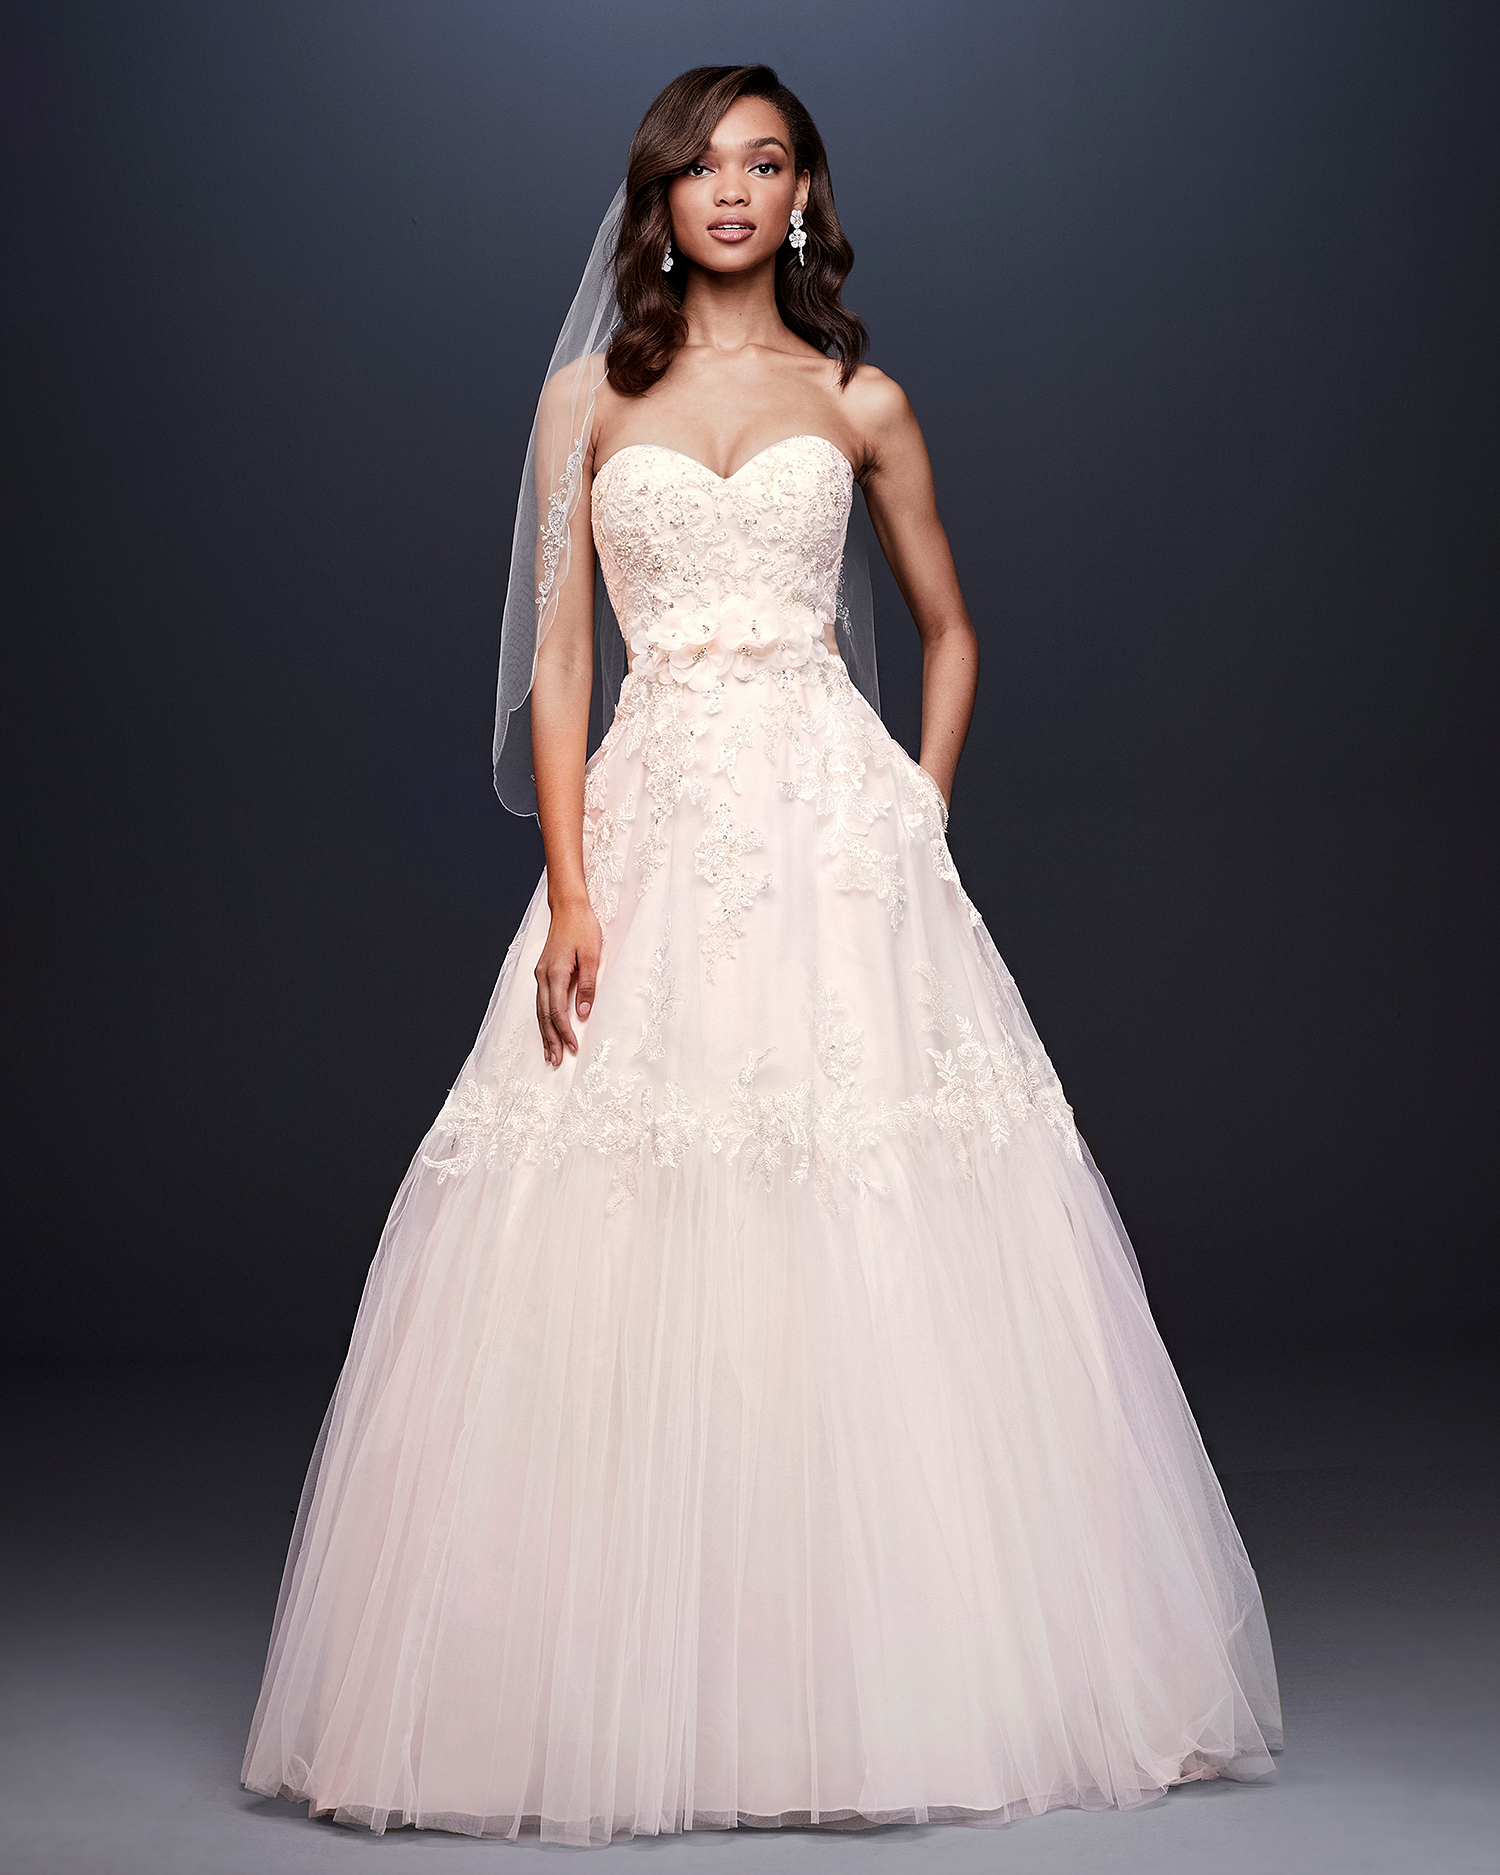 davids bridal wedding dress fall 2019 strapless sweetheart with floral appliques